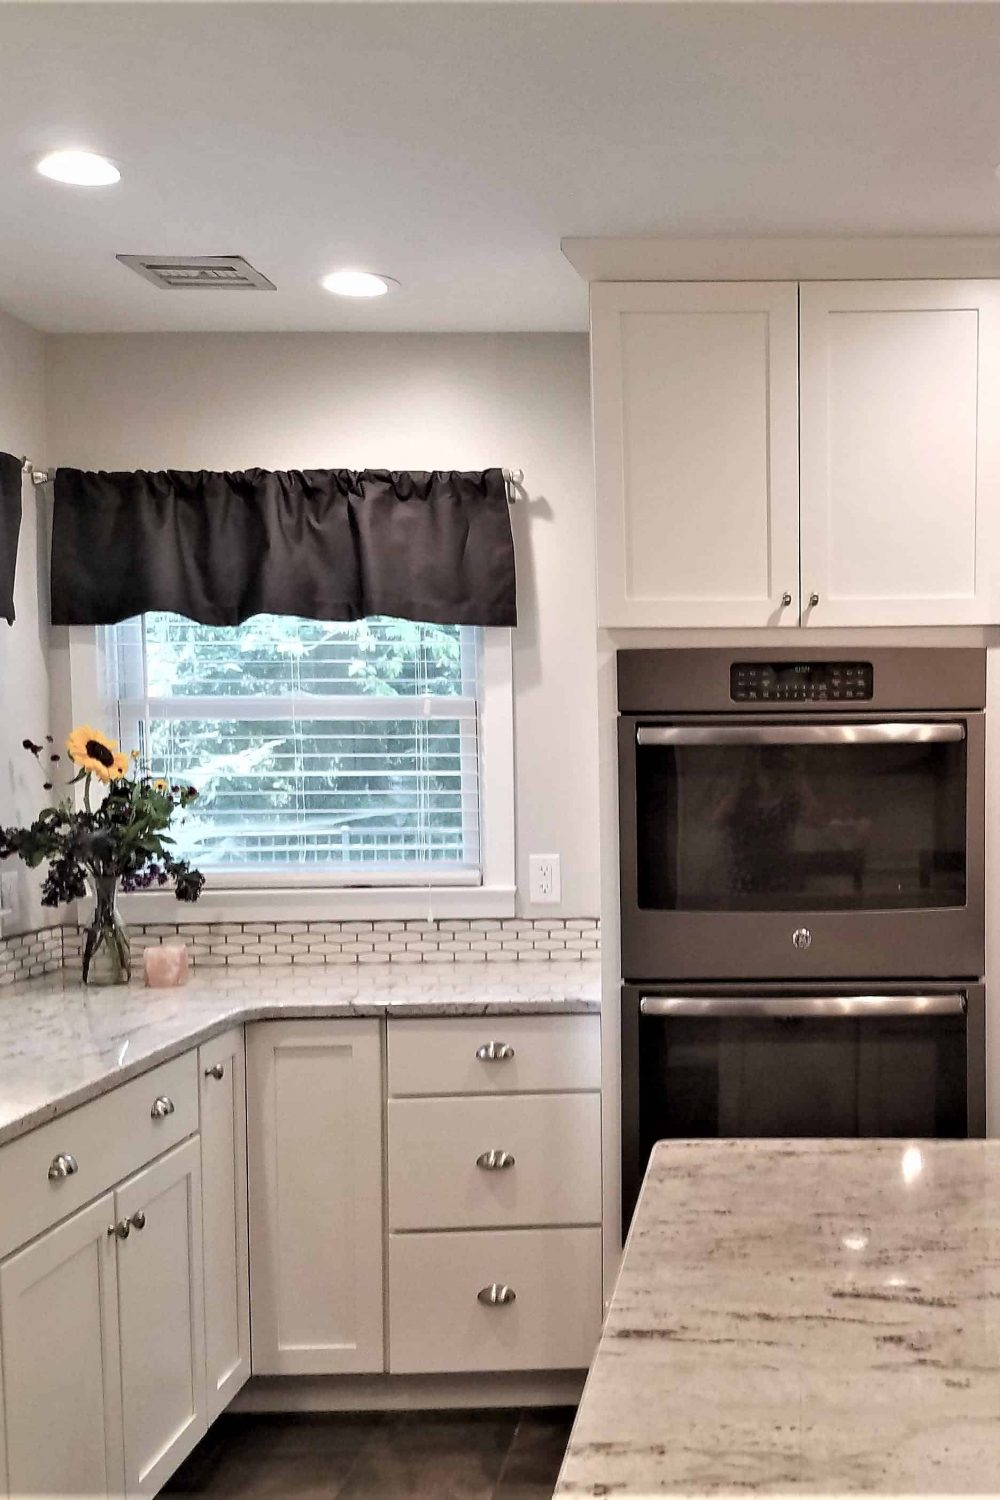 Cabinetry Terms to know-full overlay